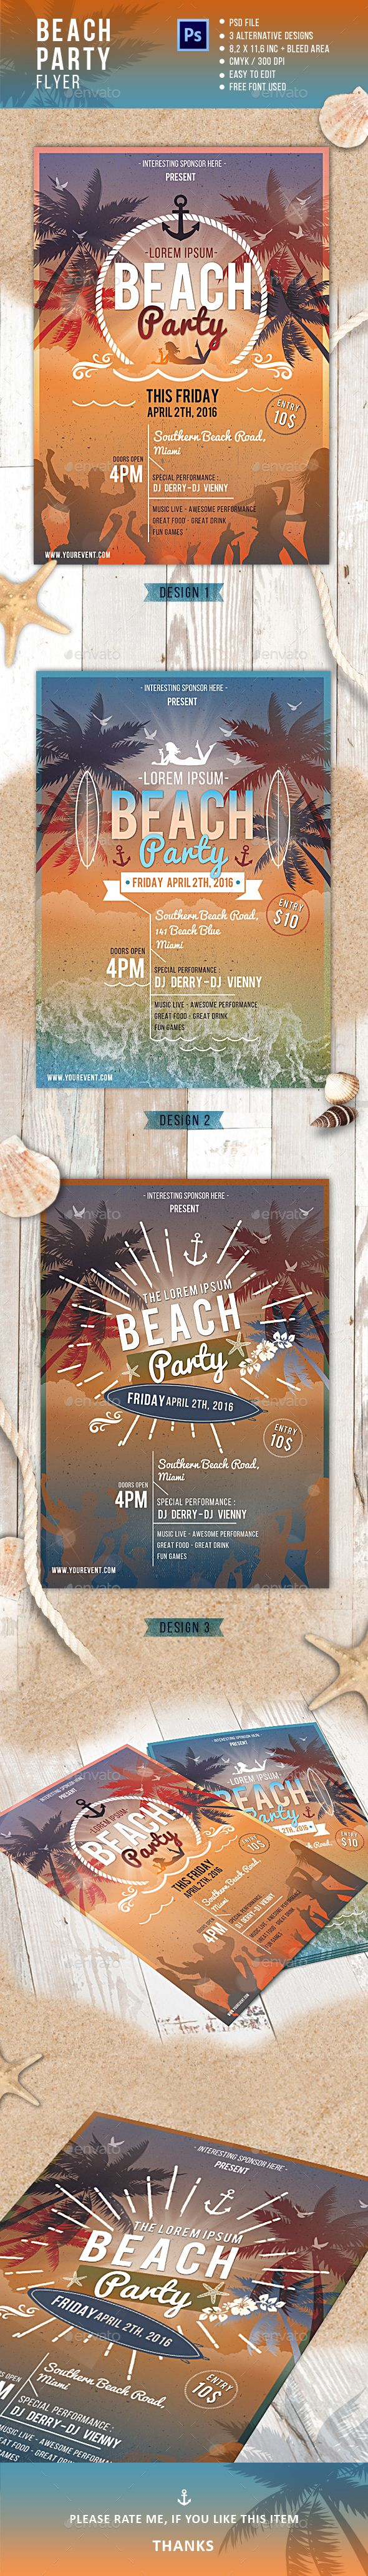 Beach Party Flyer,beach, beach party, flyer, flyer template, holiday, layered, music, pool party, poster, psd, retro, retro summer, spring, summer, summer break flyer, summer event flyer, summer festival, summer flyer, summer party flyer, summer poster, summerfest flyer, summerfest poster, sun, travelling flyer, vintage